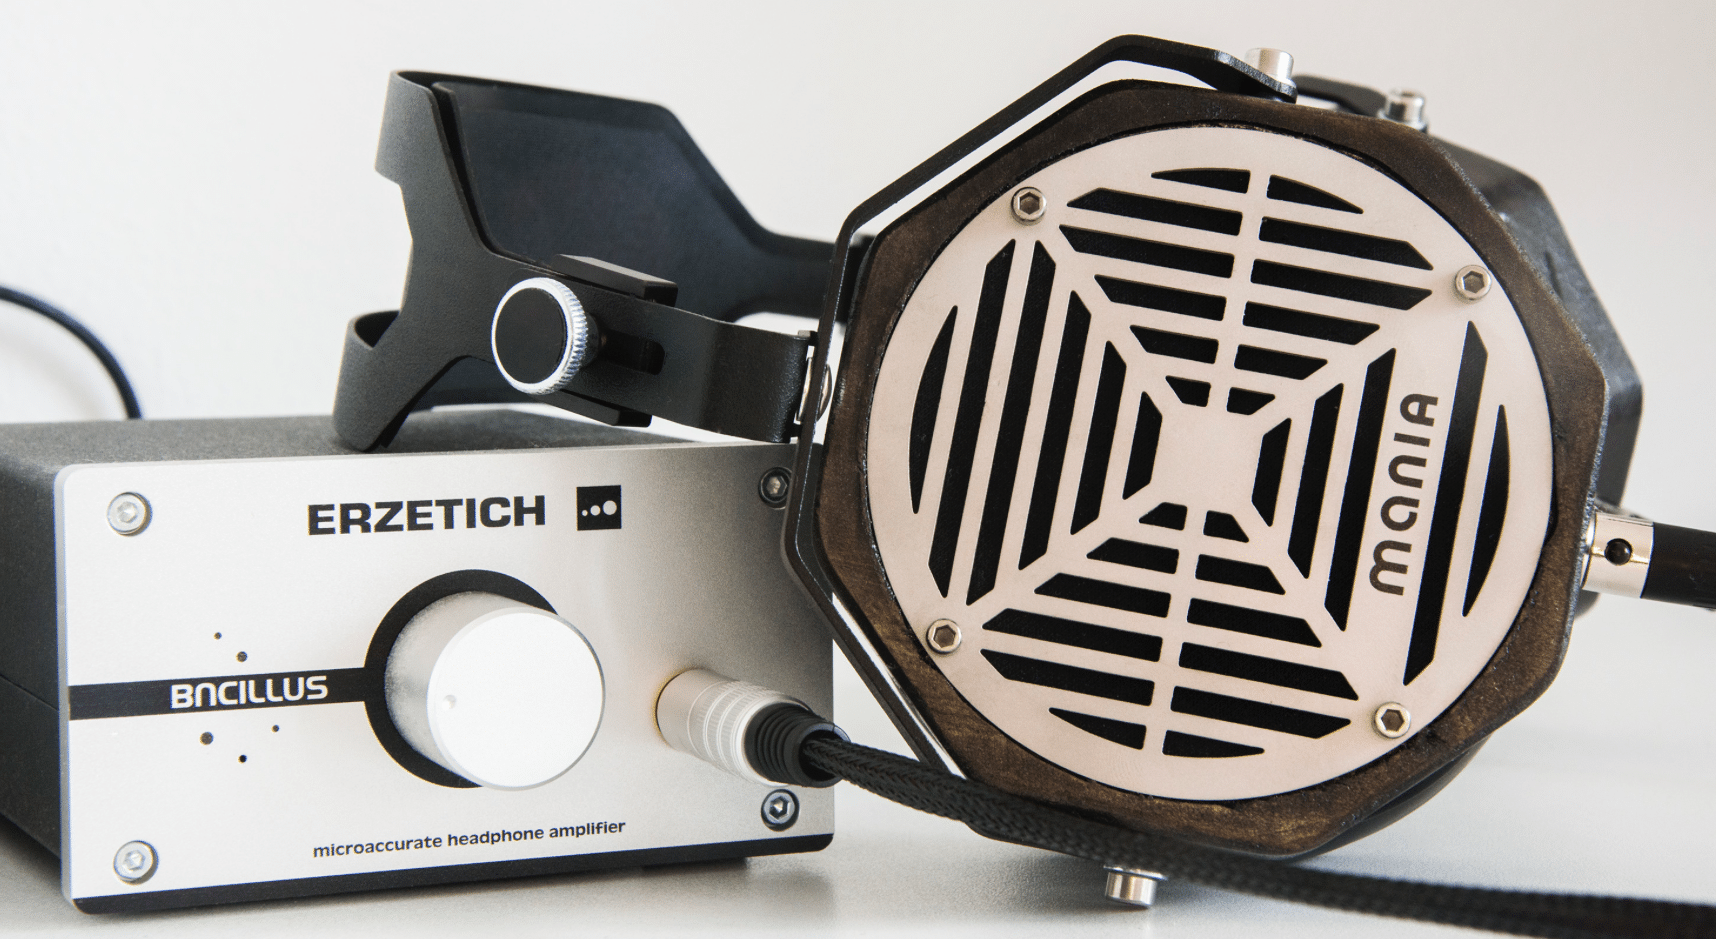 Phobos & Mania Headphones from Erzetich Audio